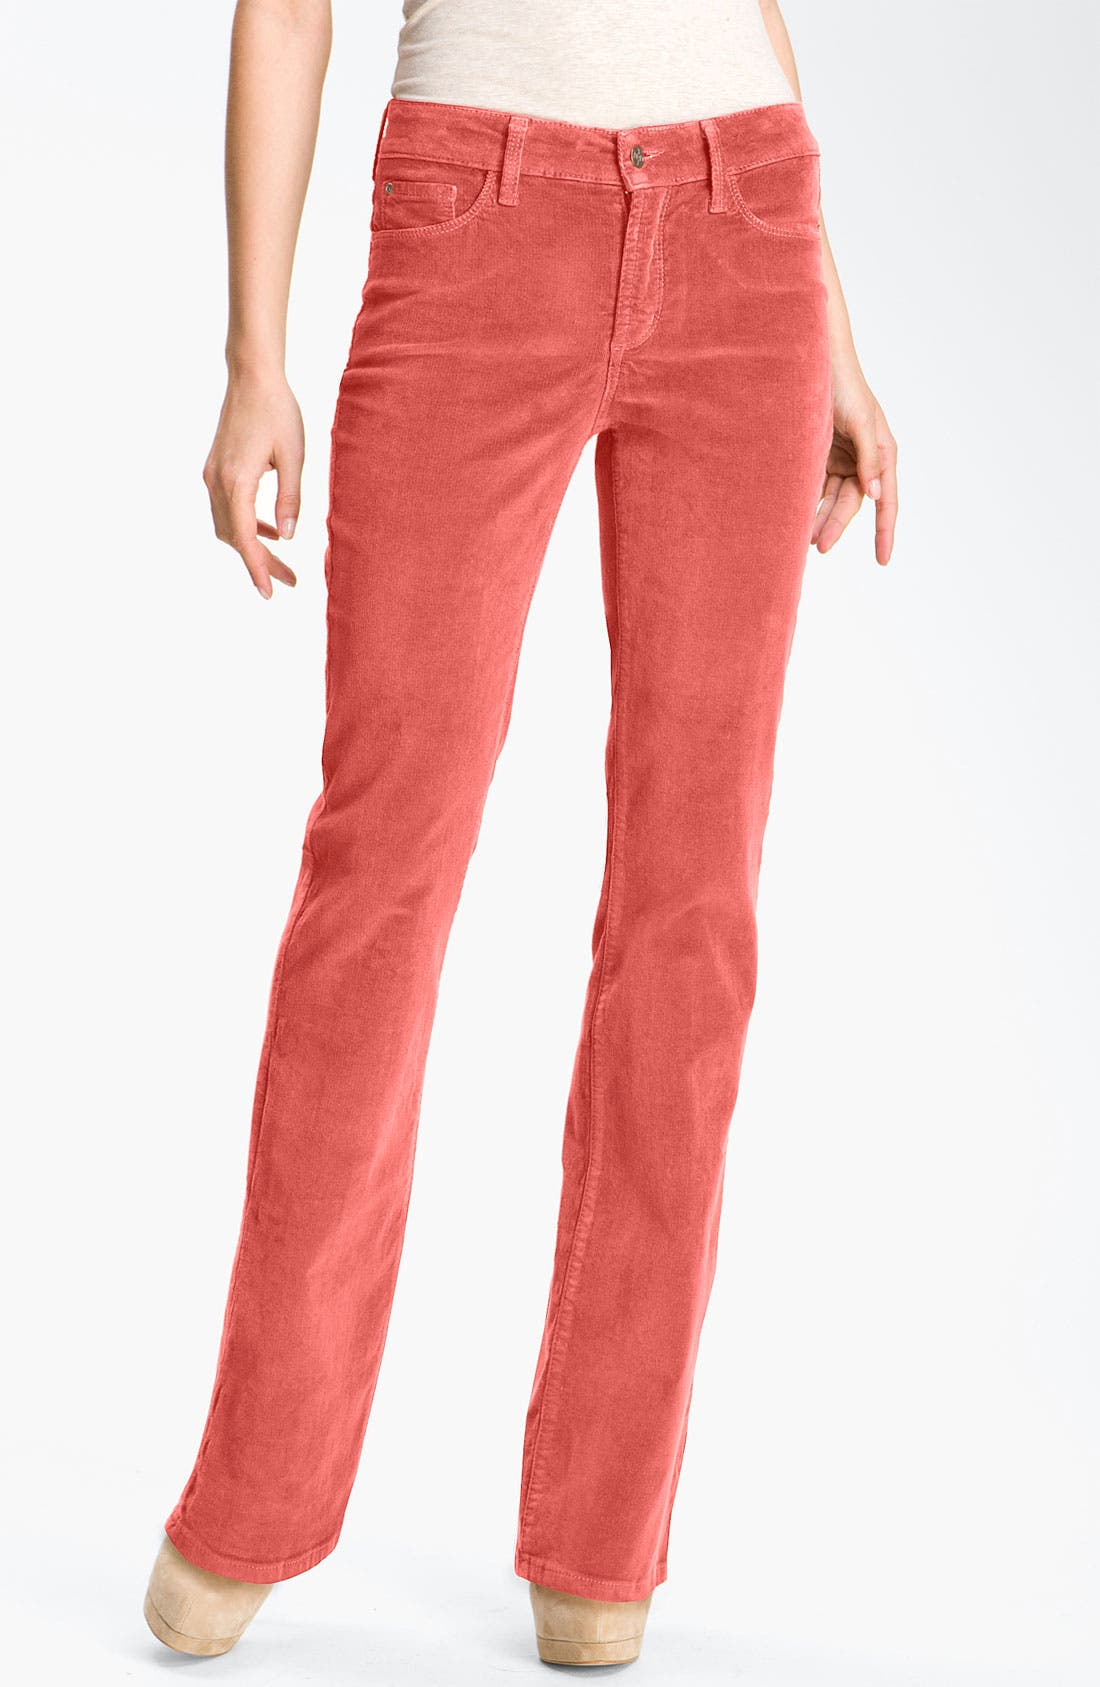 Alternate Image 1 Selected - NYDJ Bootcut Corduroy Jeans (Petite)